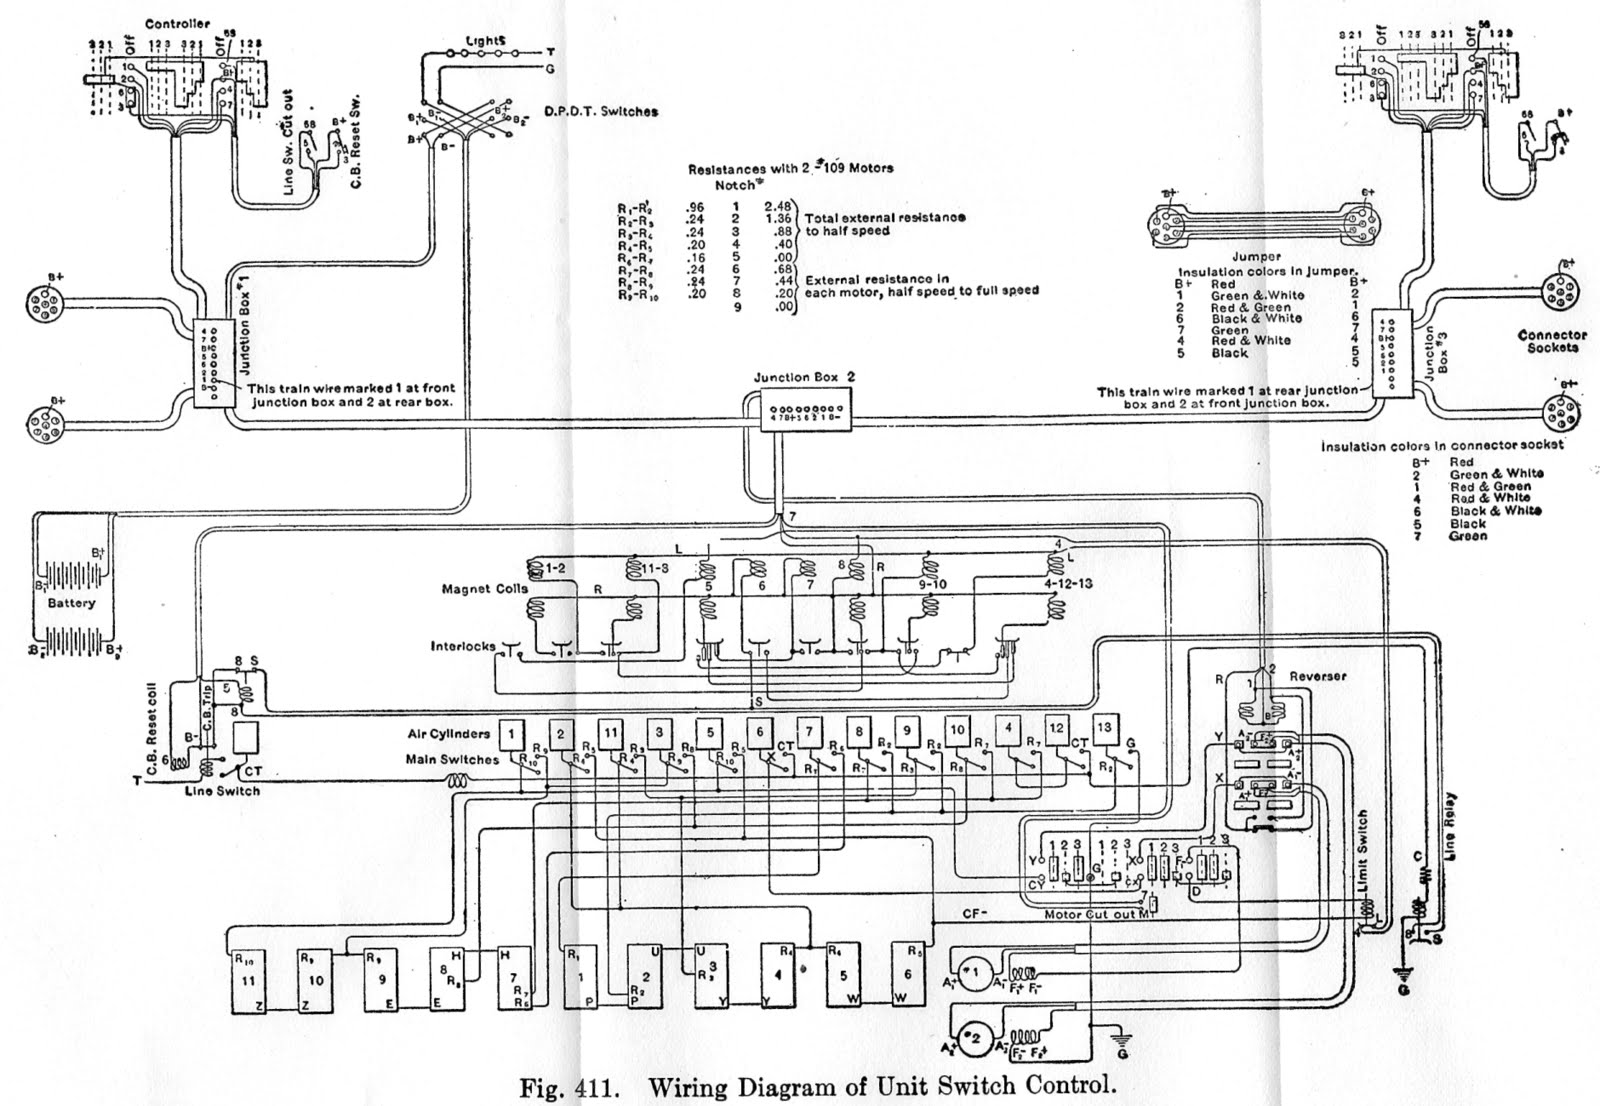 Brilliant Wagon R Electrical Wiring Diagram Circuit Diagram Template Wiring Cloud Cranvenetmohammedshrineorg